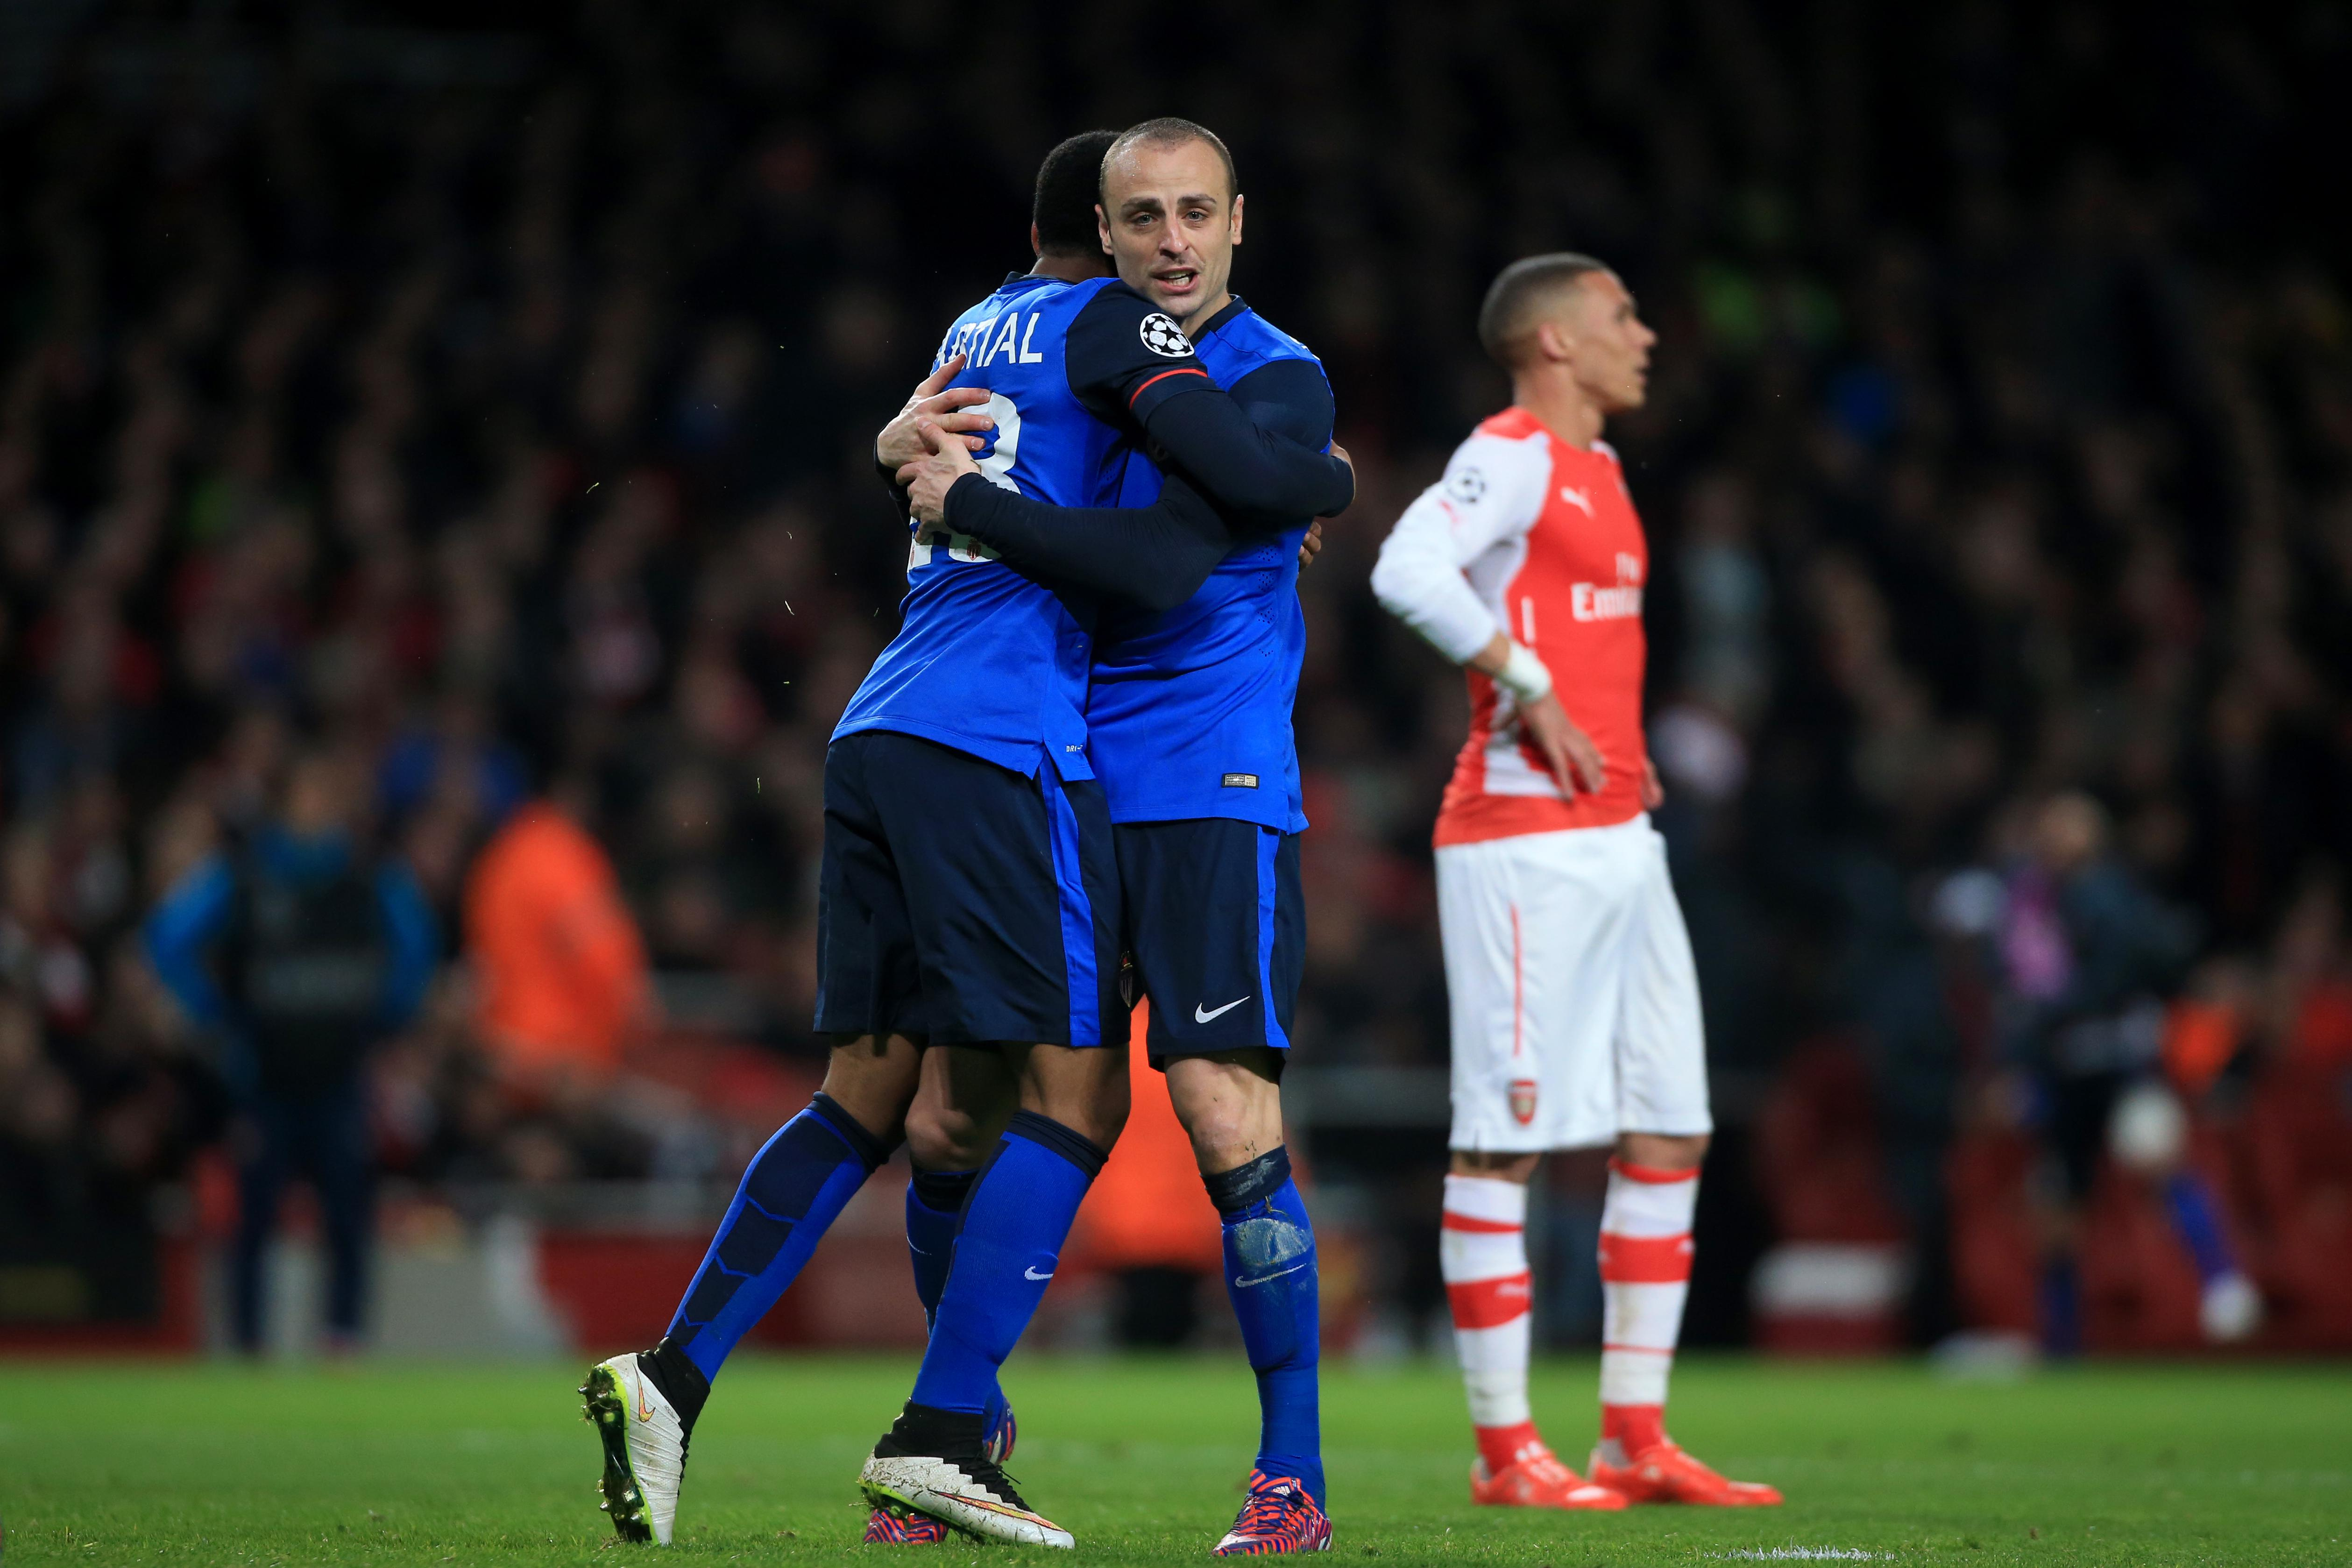 Martial and Berbatov were part of the Monaco side that knocked Arsenal out of the Champions League in 2015